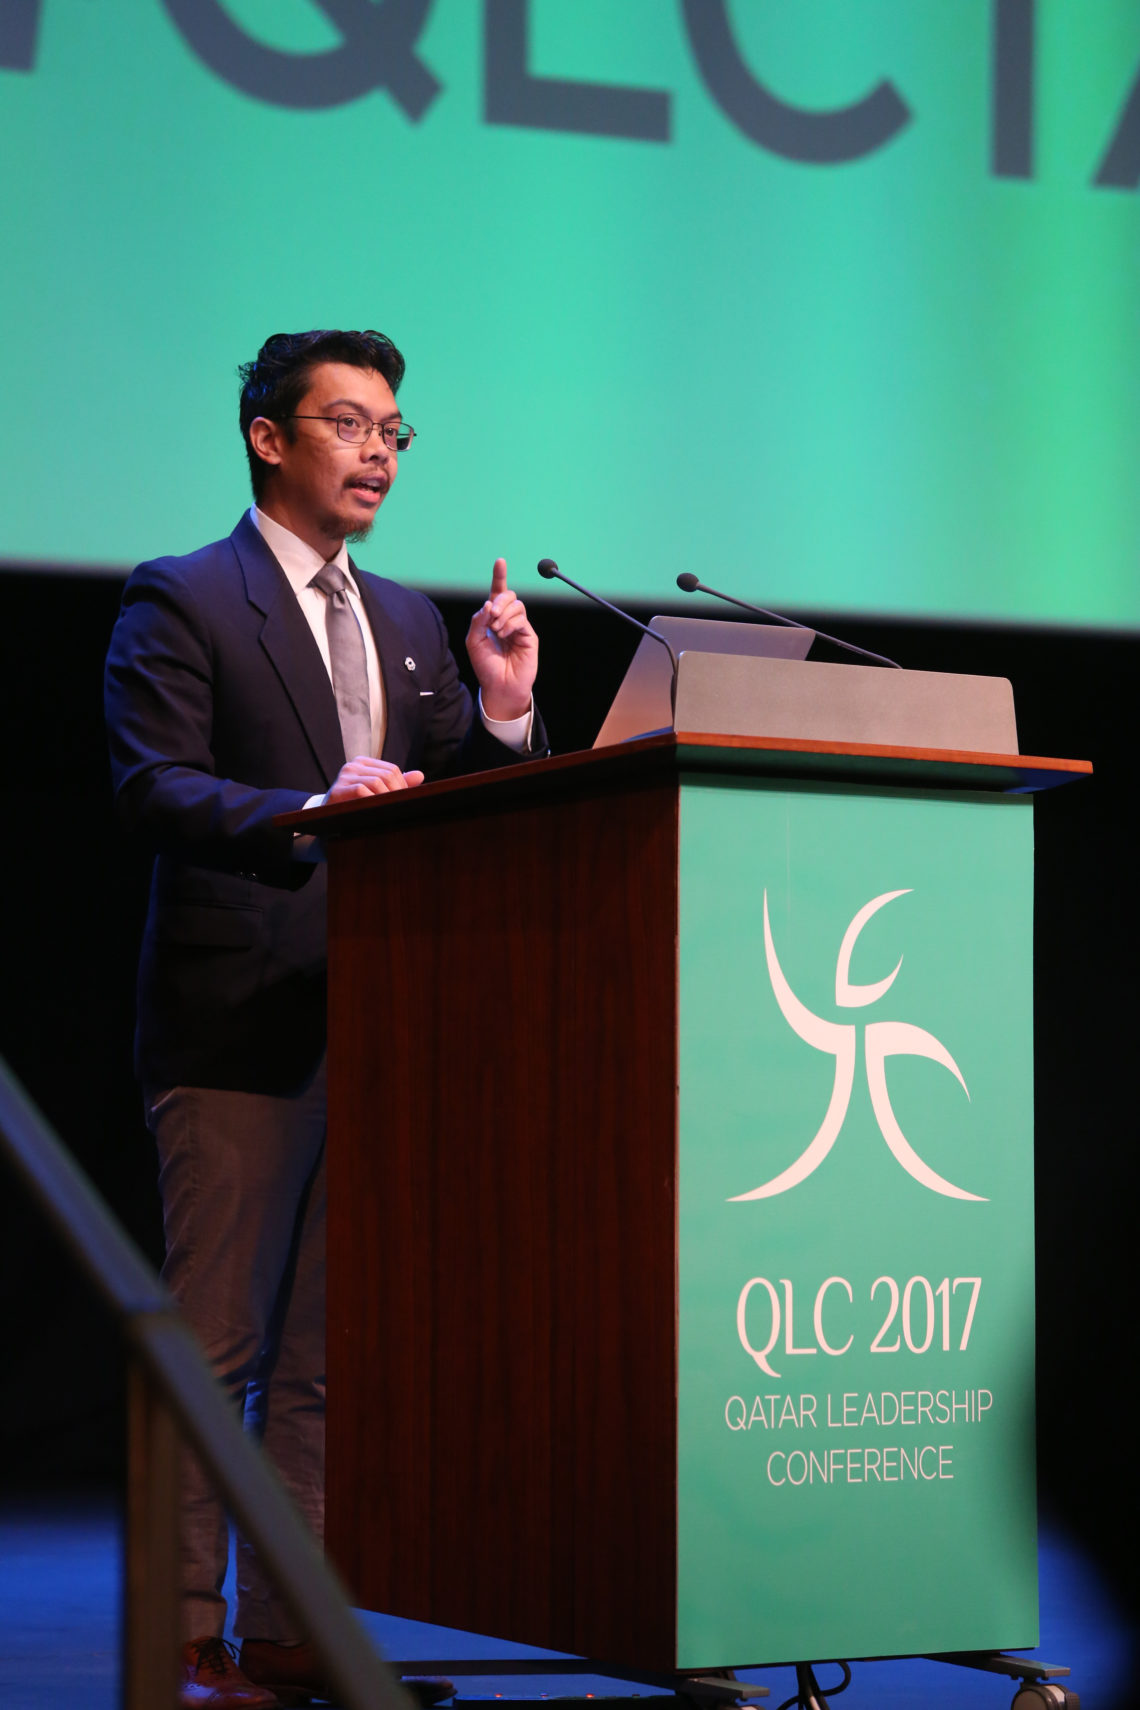 Ryan Villanueva: On Leadership at #QLC17